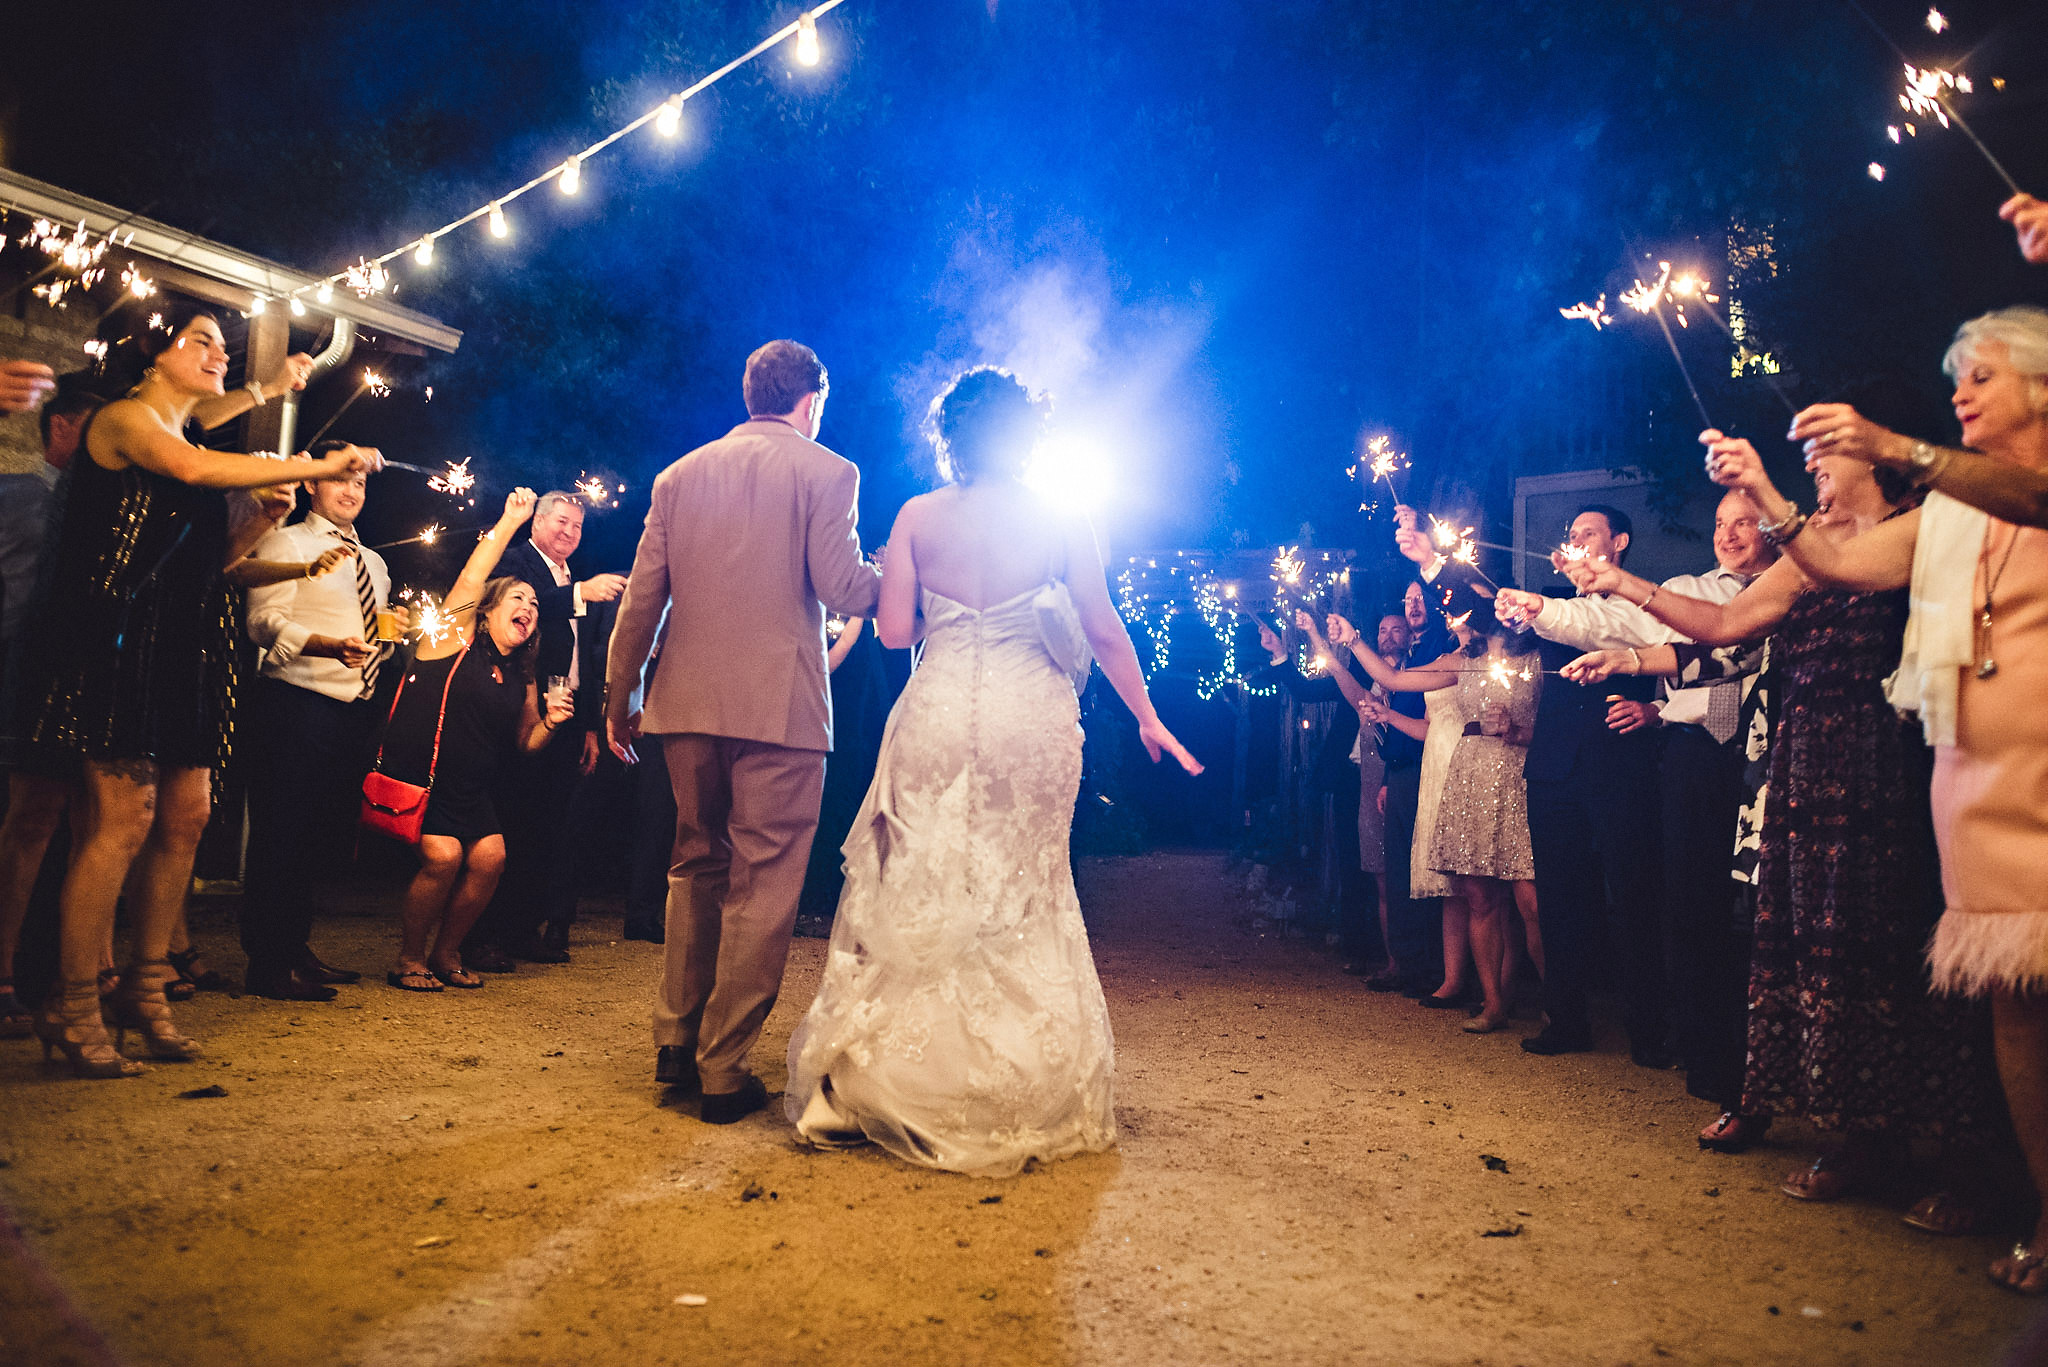 Eirik Halvorsen rustic wedding Fredericksburg Austin Texas wedding photographer-86.jpg